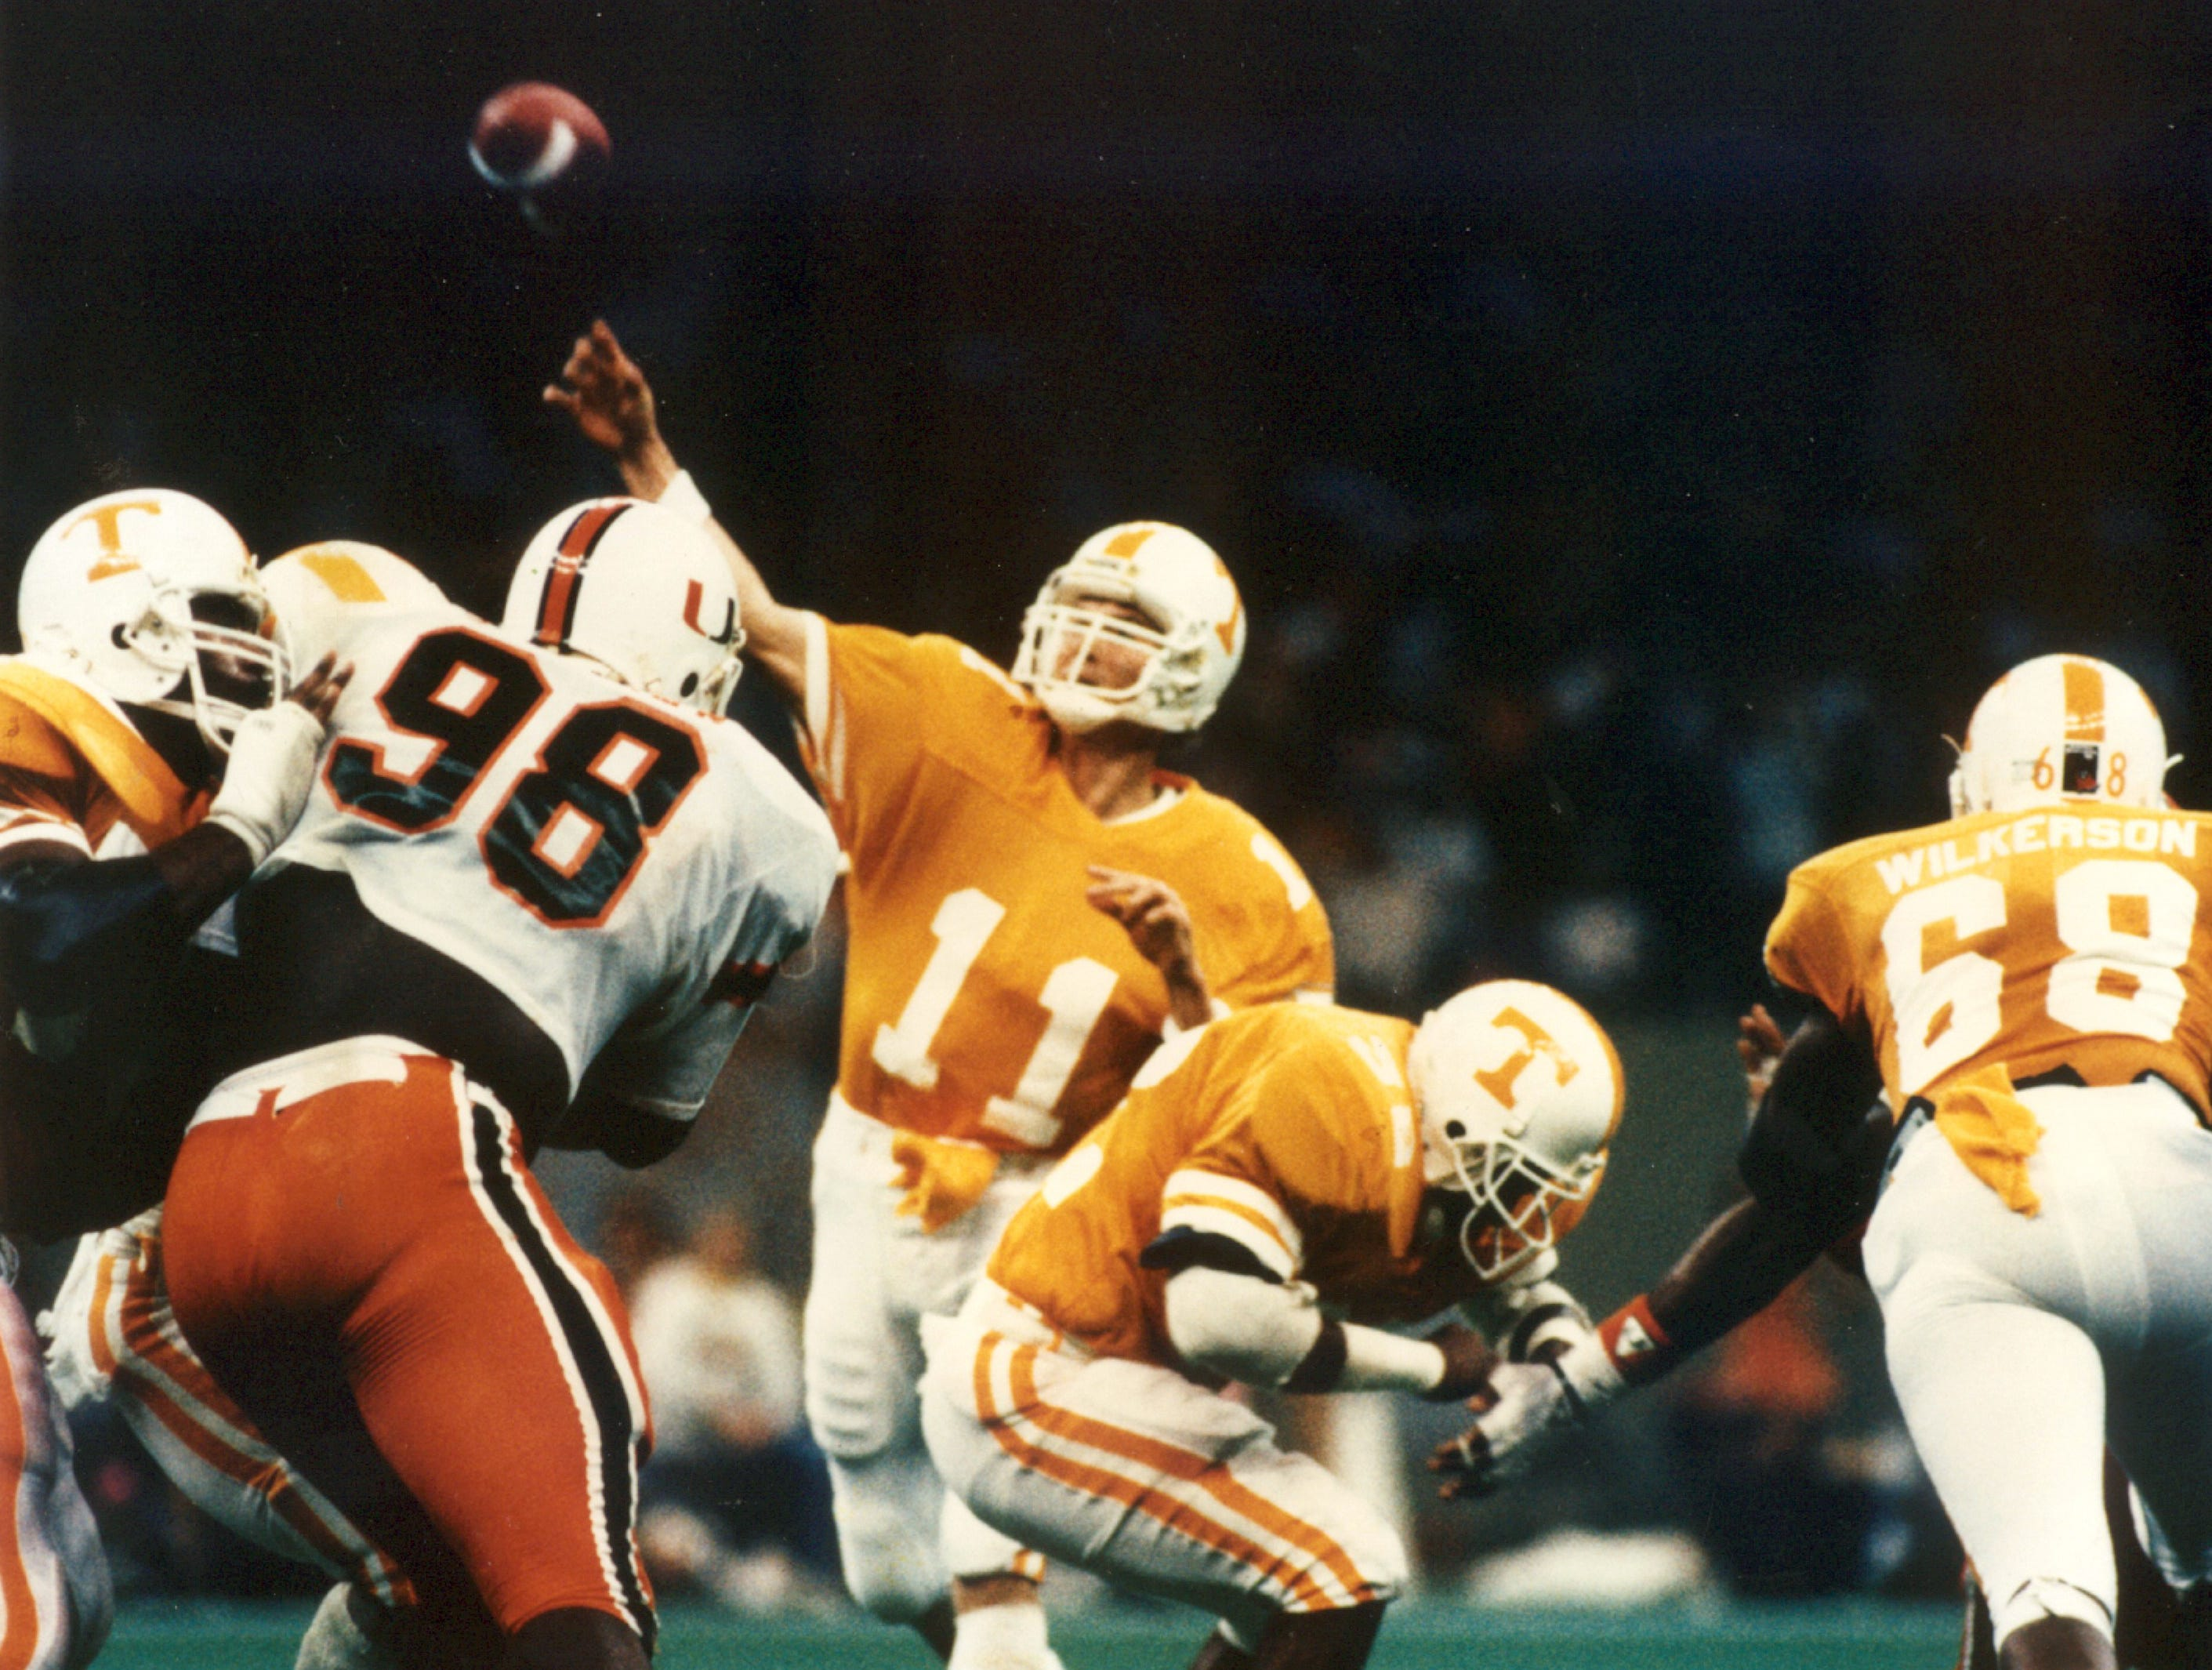 Tennessee quarterback Daryl Dickey passes the ball against Miami during the 1985 Sugar Bowl.